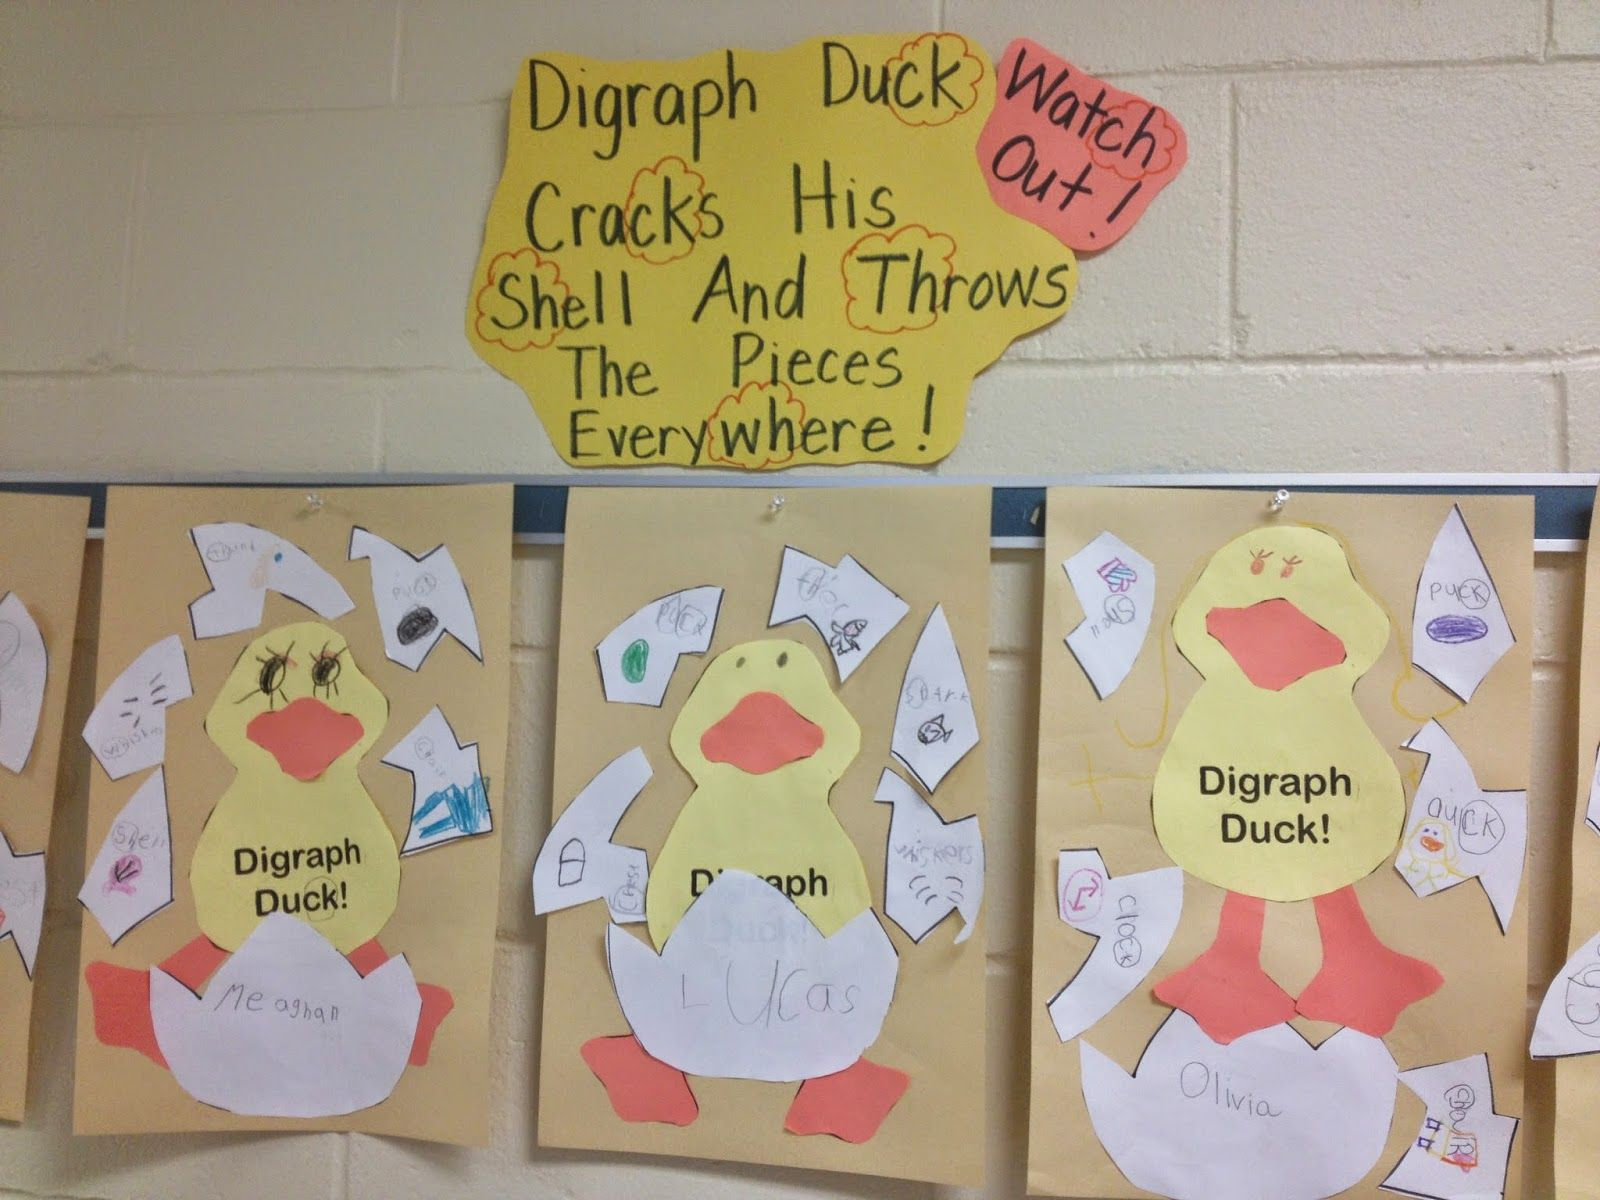 Digraph Duck Is Cracking From His Shell